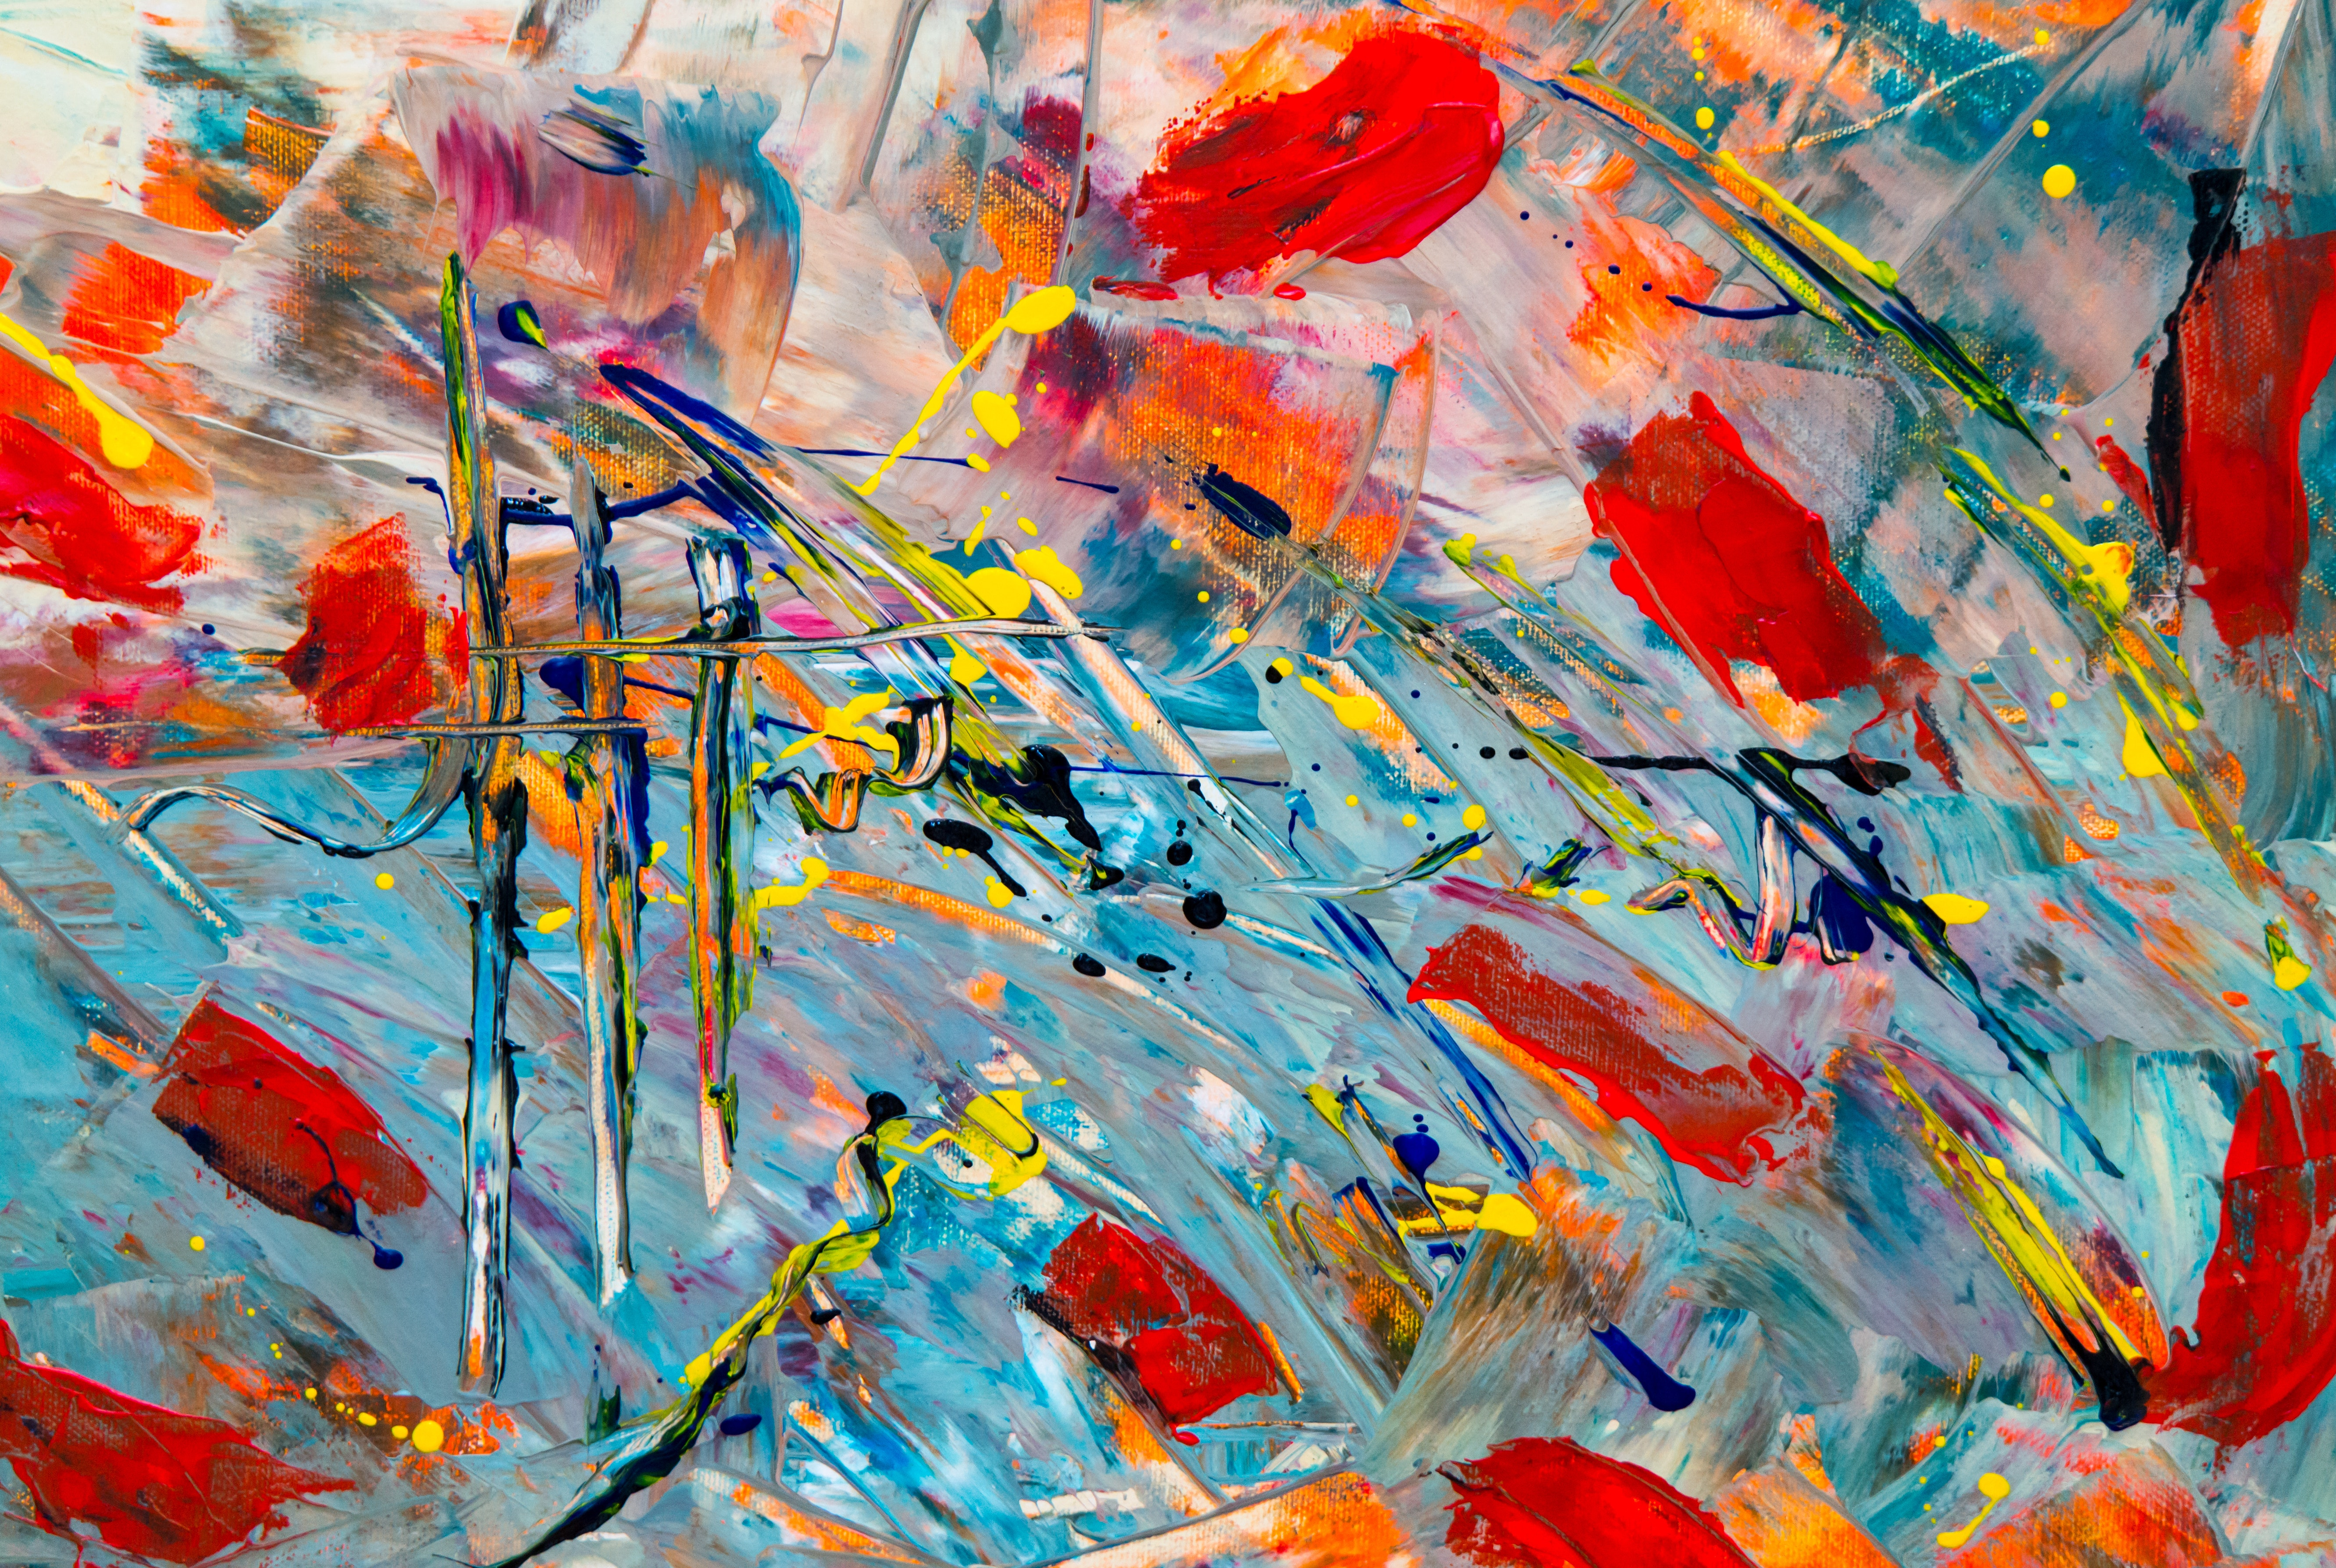 4k-wallpaper-abstract-abstract-expressionism-12668081